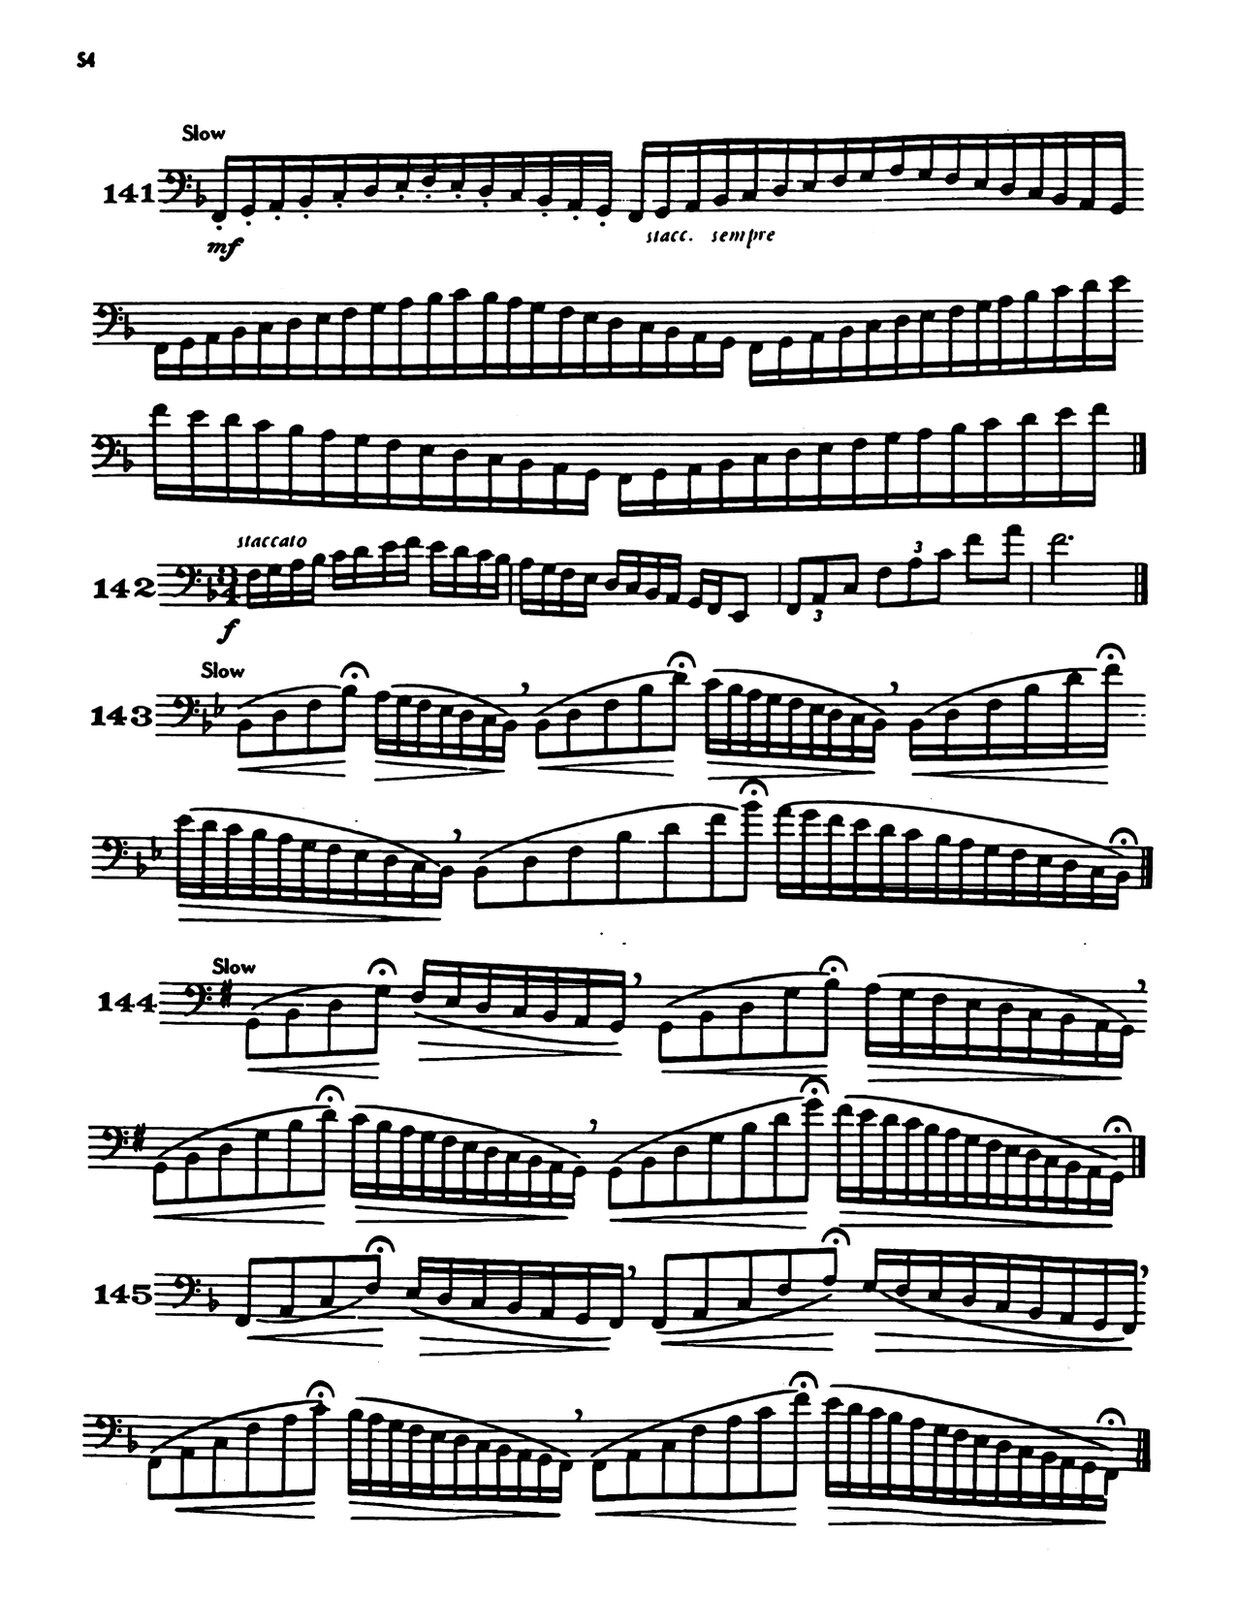 Schlossberg, Daily Drills and Technical Exercises for Trombone 5